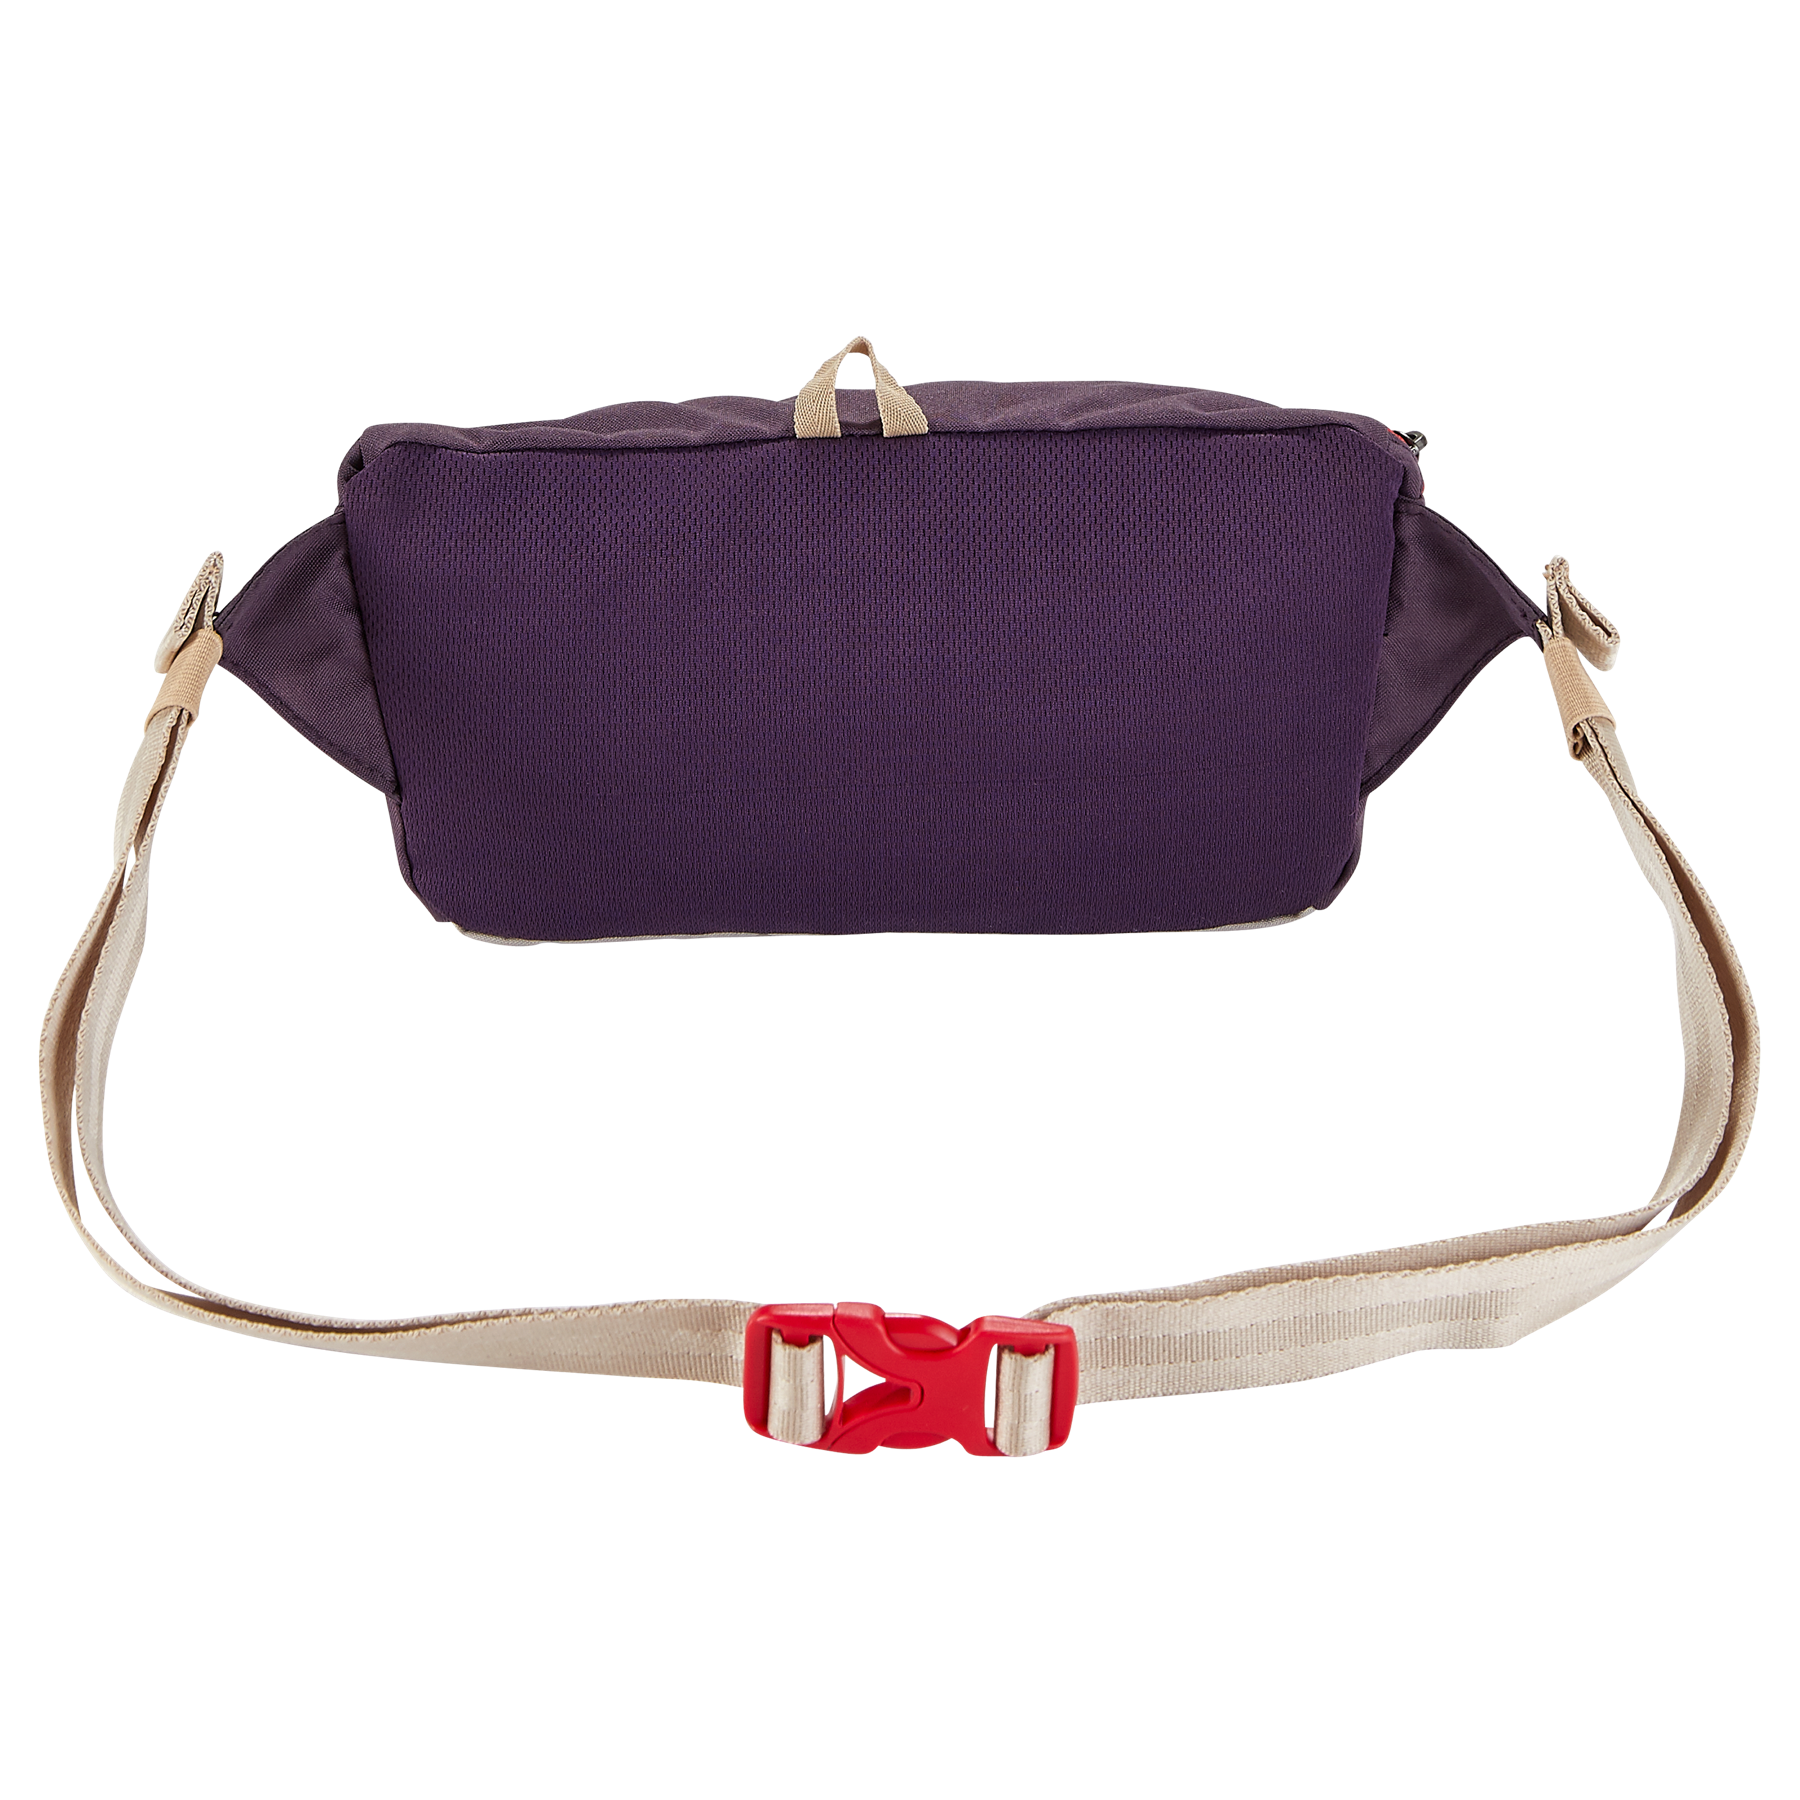 EAGLE CREEK STASH CROSSBODY BAG